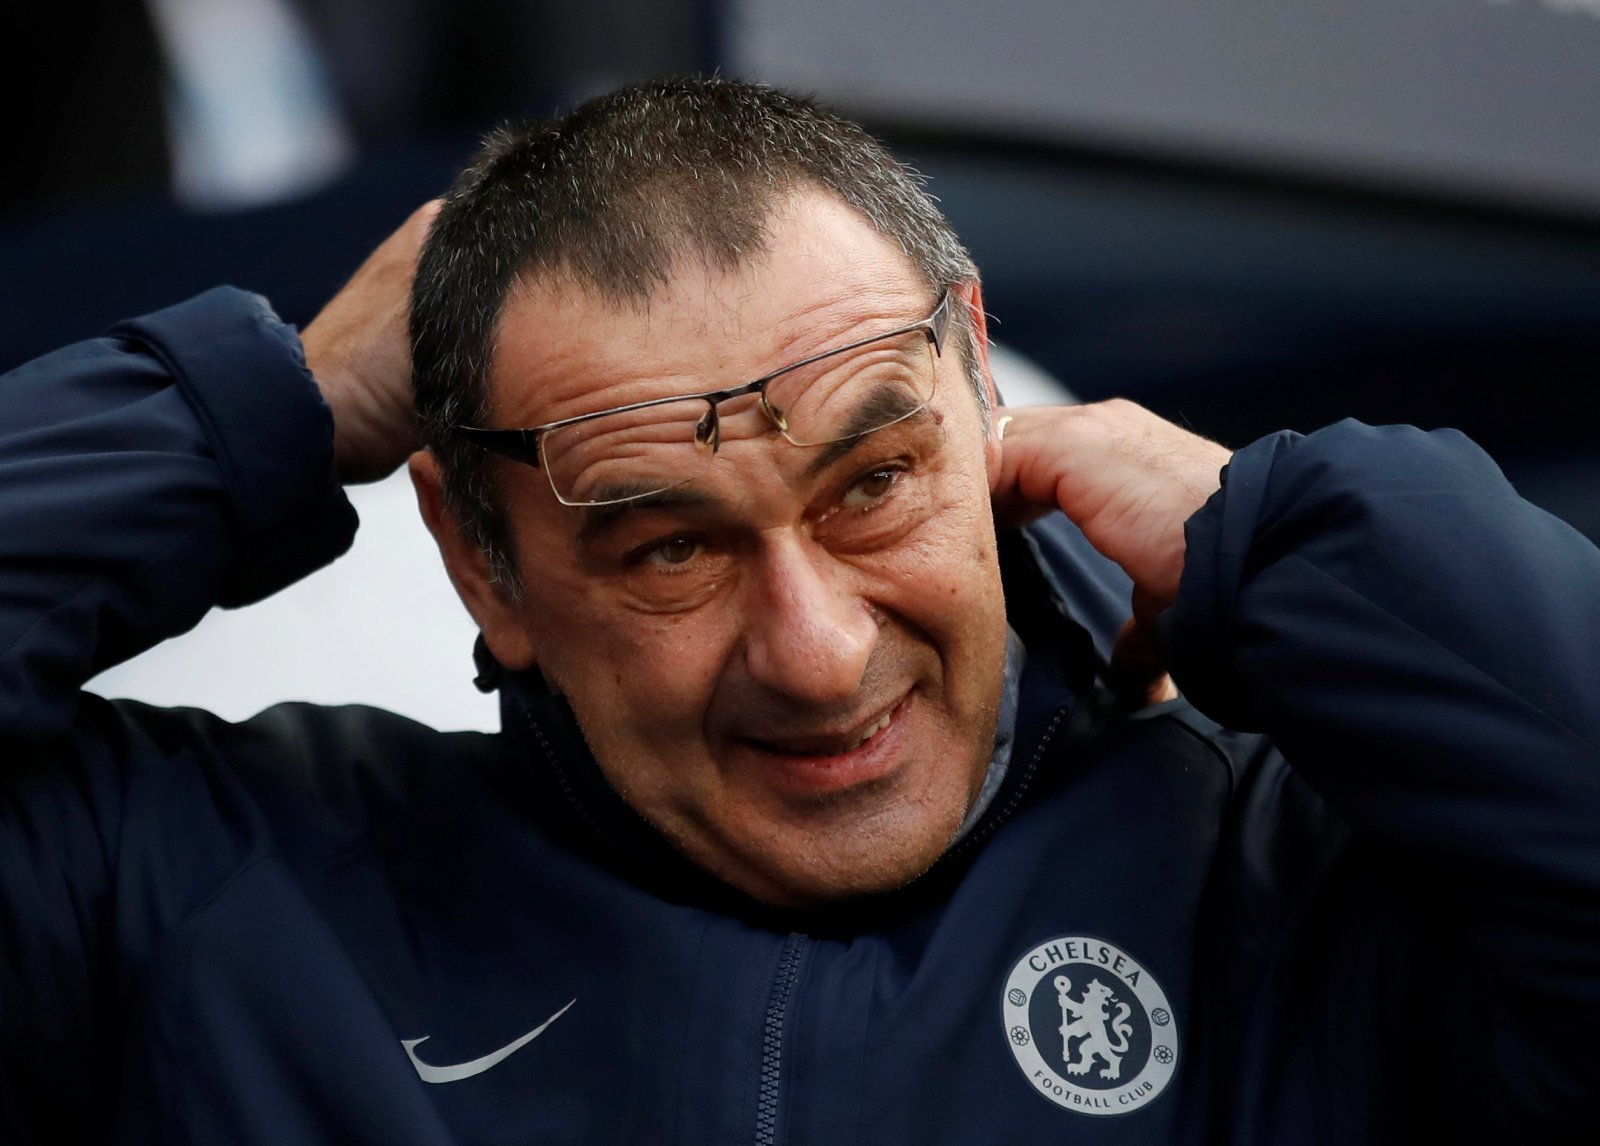 Chelsea fans take to Twitter to lambaste Sarri for same old changes